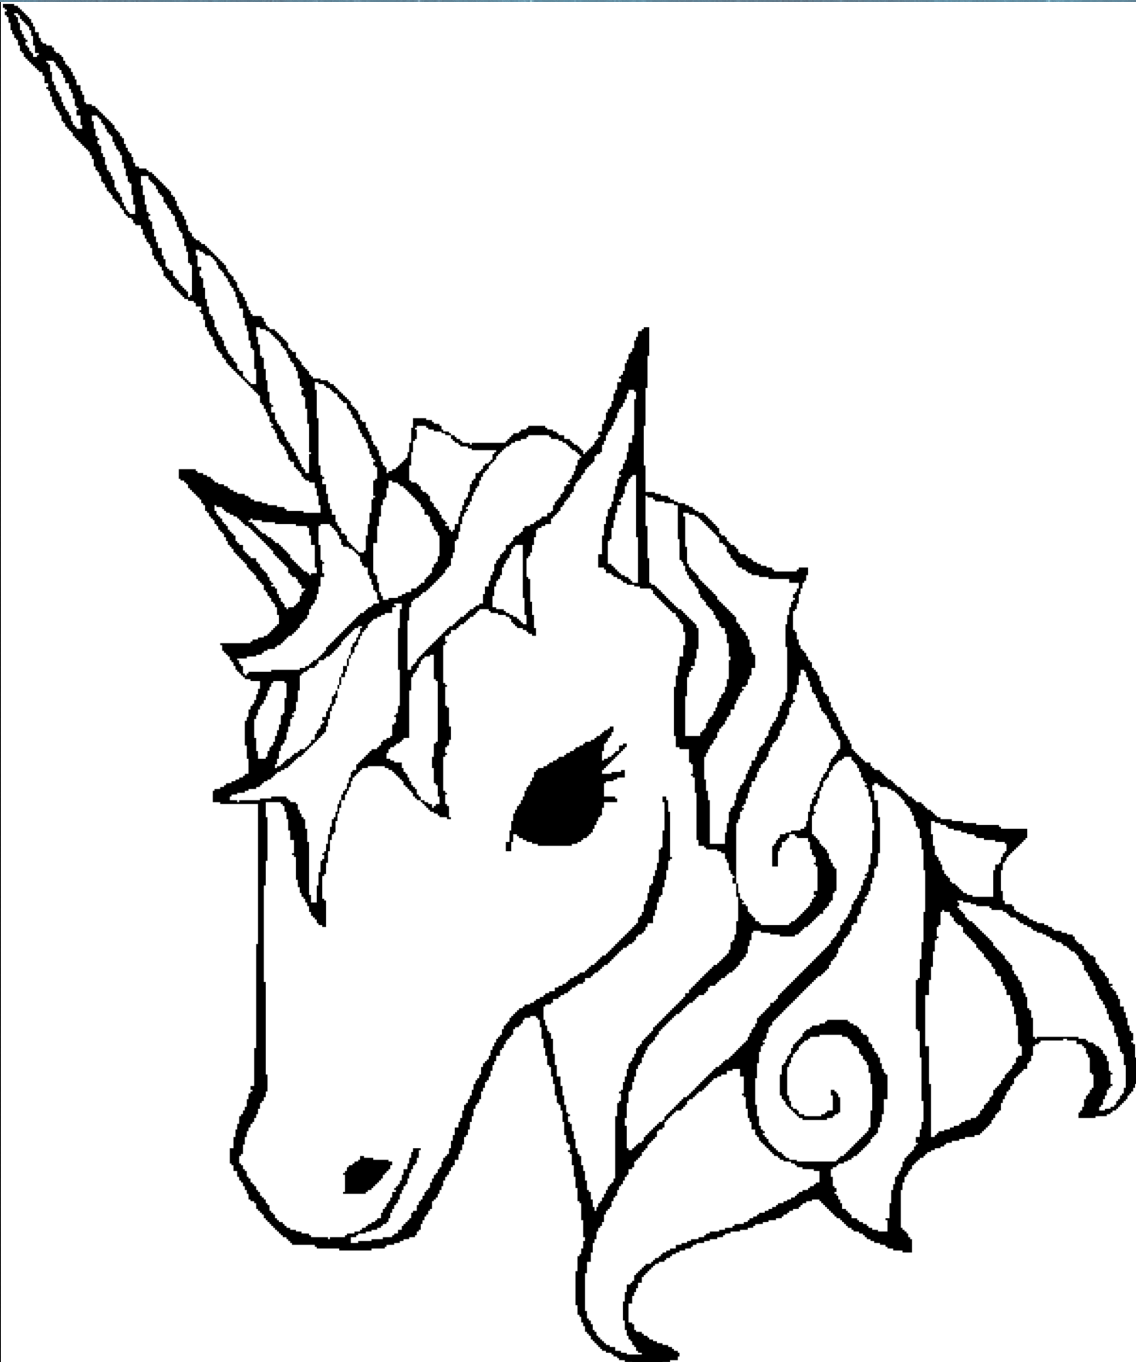 hight resolution of free unicorn maze coloring pages carousel horse silhouette full size carousel horse